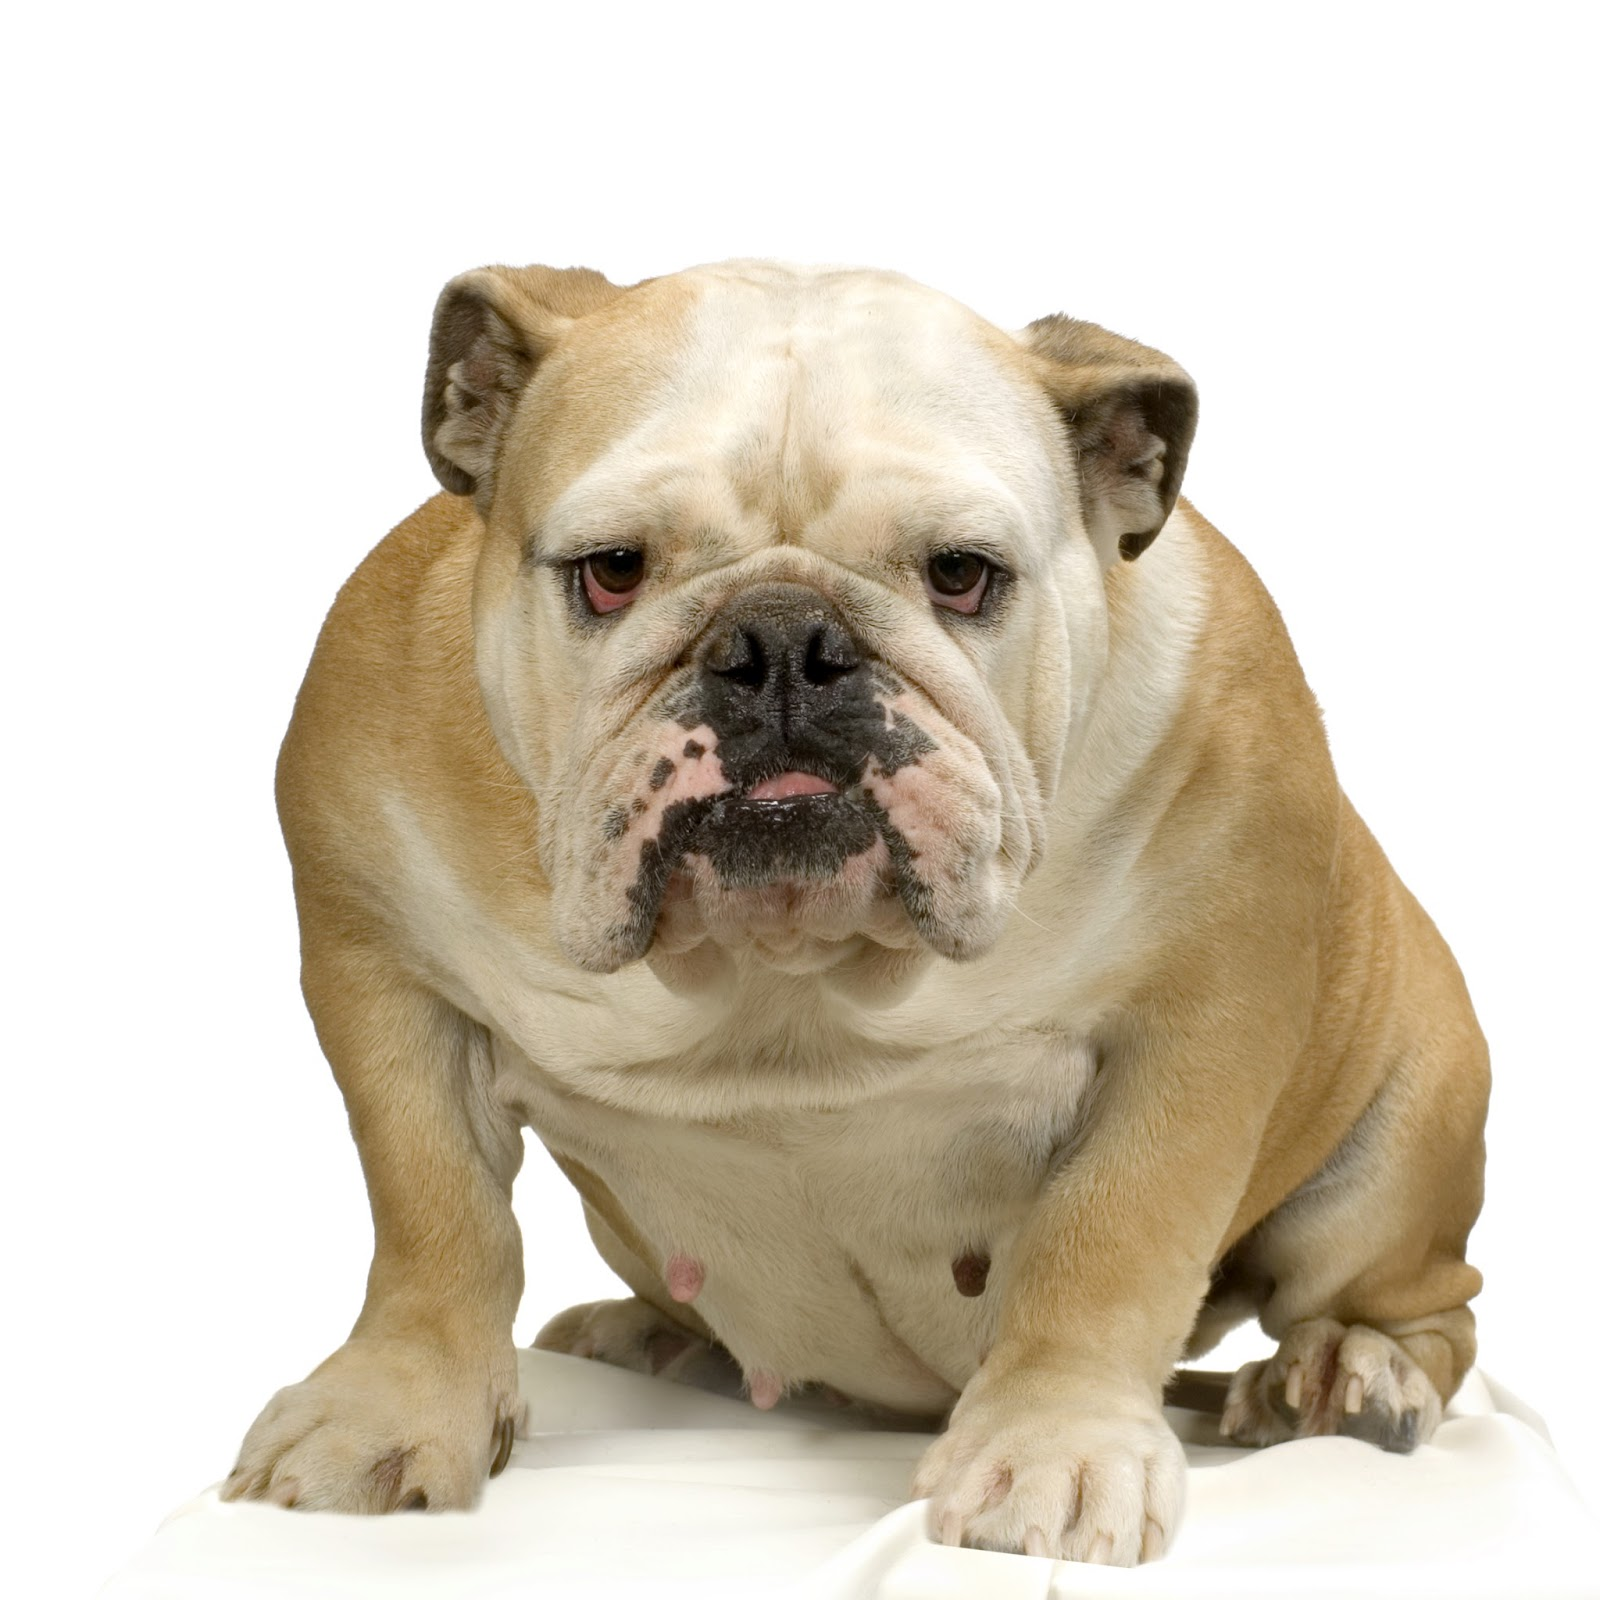 english bulldog cream and white standing in front of white background